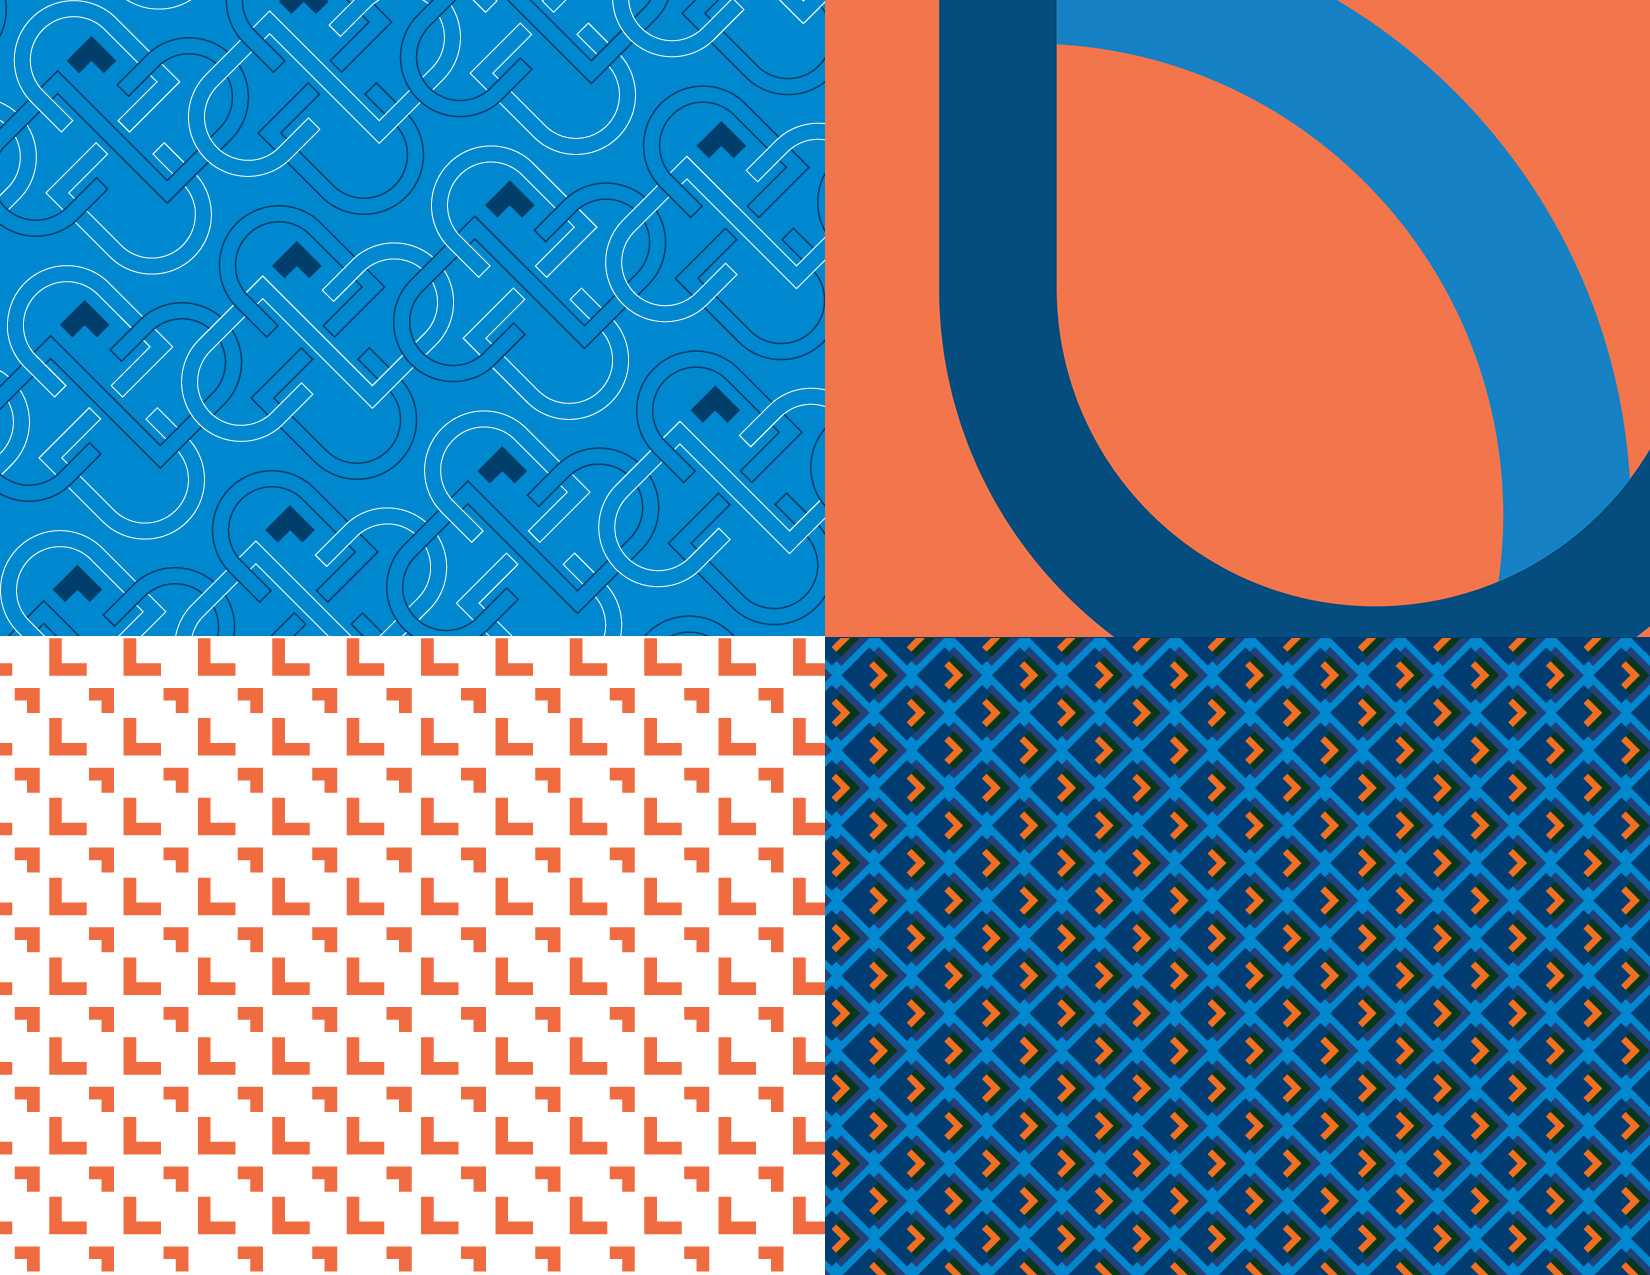 Brand pattern examples